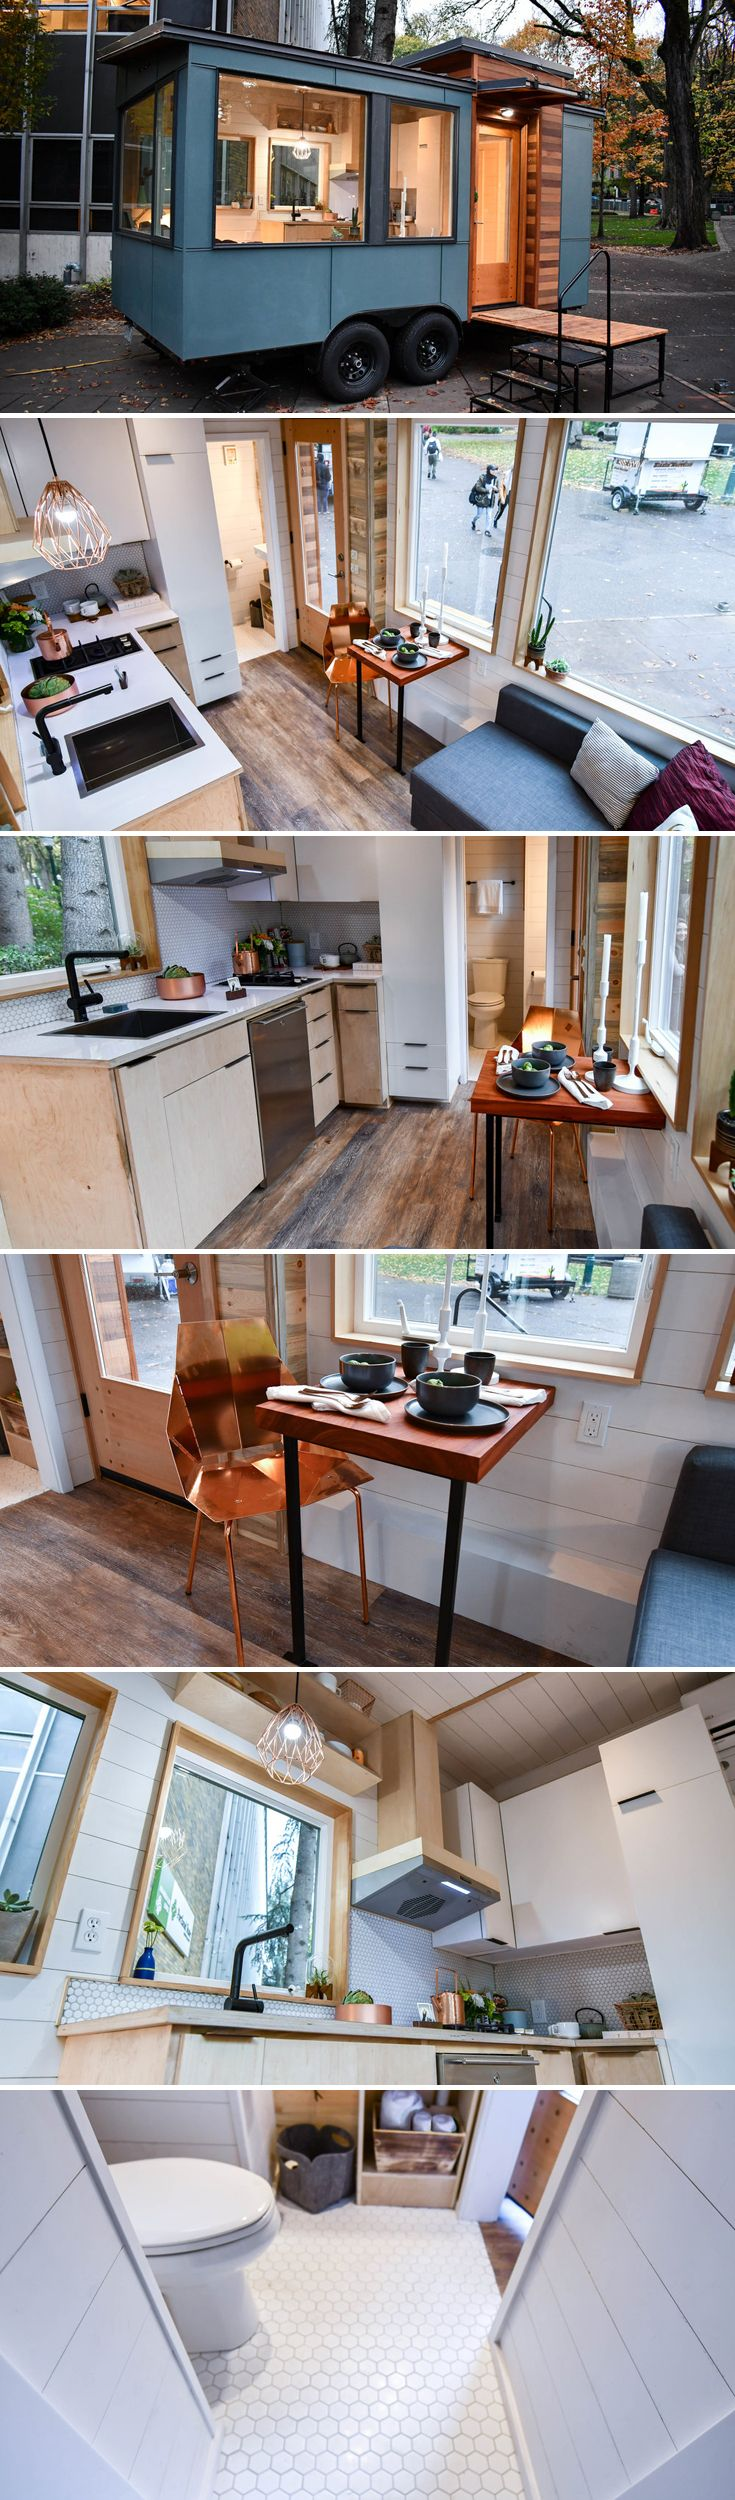 This stylish tiny house is the Verve Lux. At 16-feet long it's one of the smaller tiny houses on the market, but it still has room for all the essentials.